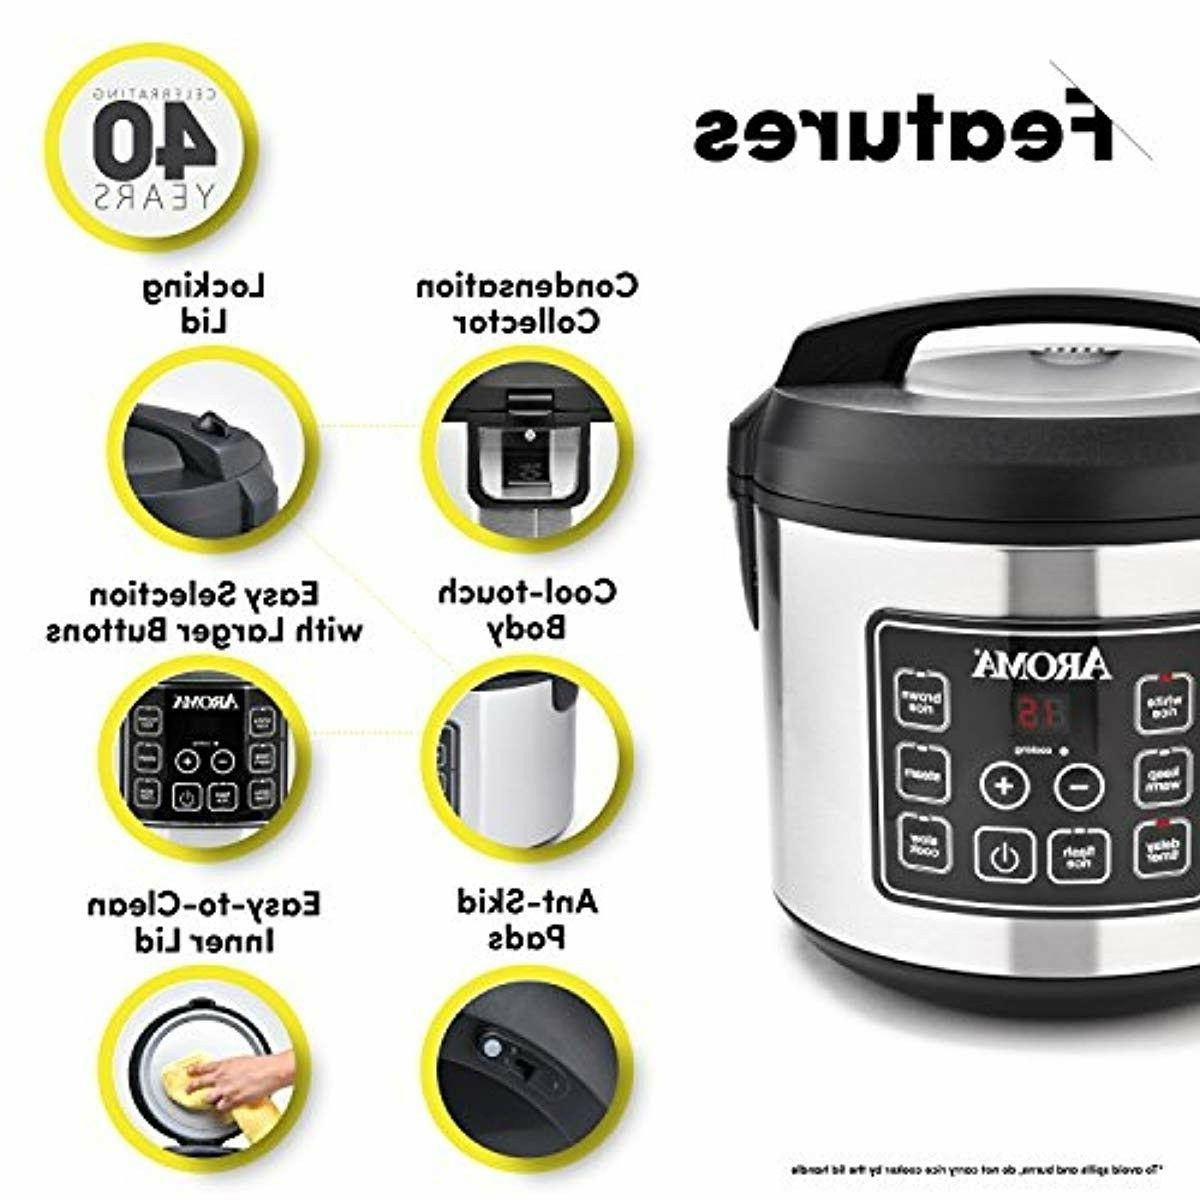 BRAND NEW 20 Cup cup Cooker USA